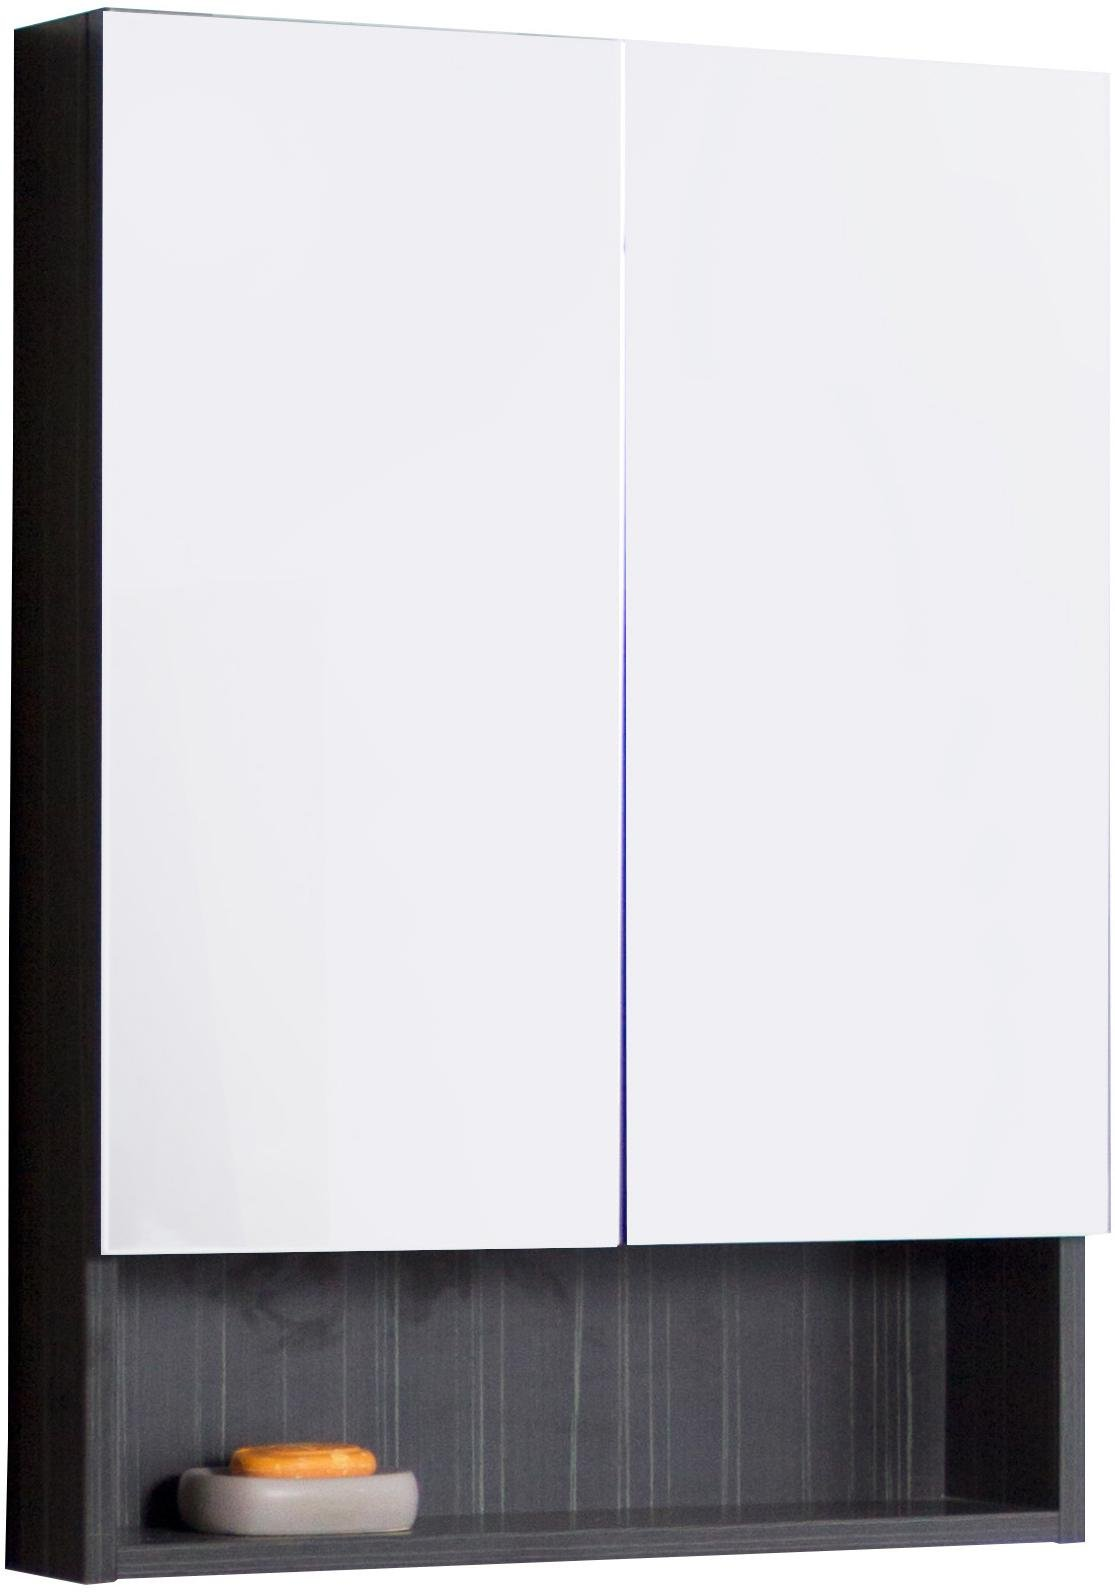 American Imaginations Rectangle Shape Modern Medicine Cabinet, Comes with a Melamine Finish in Dawn Grey Color